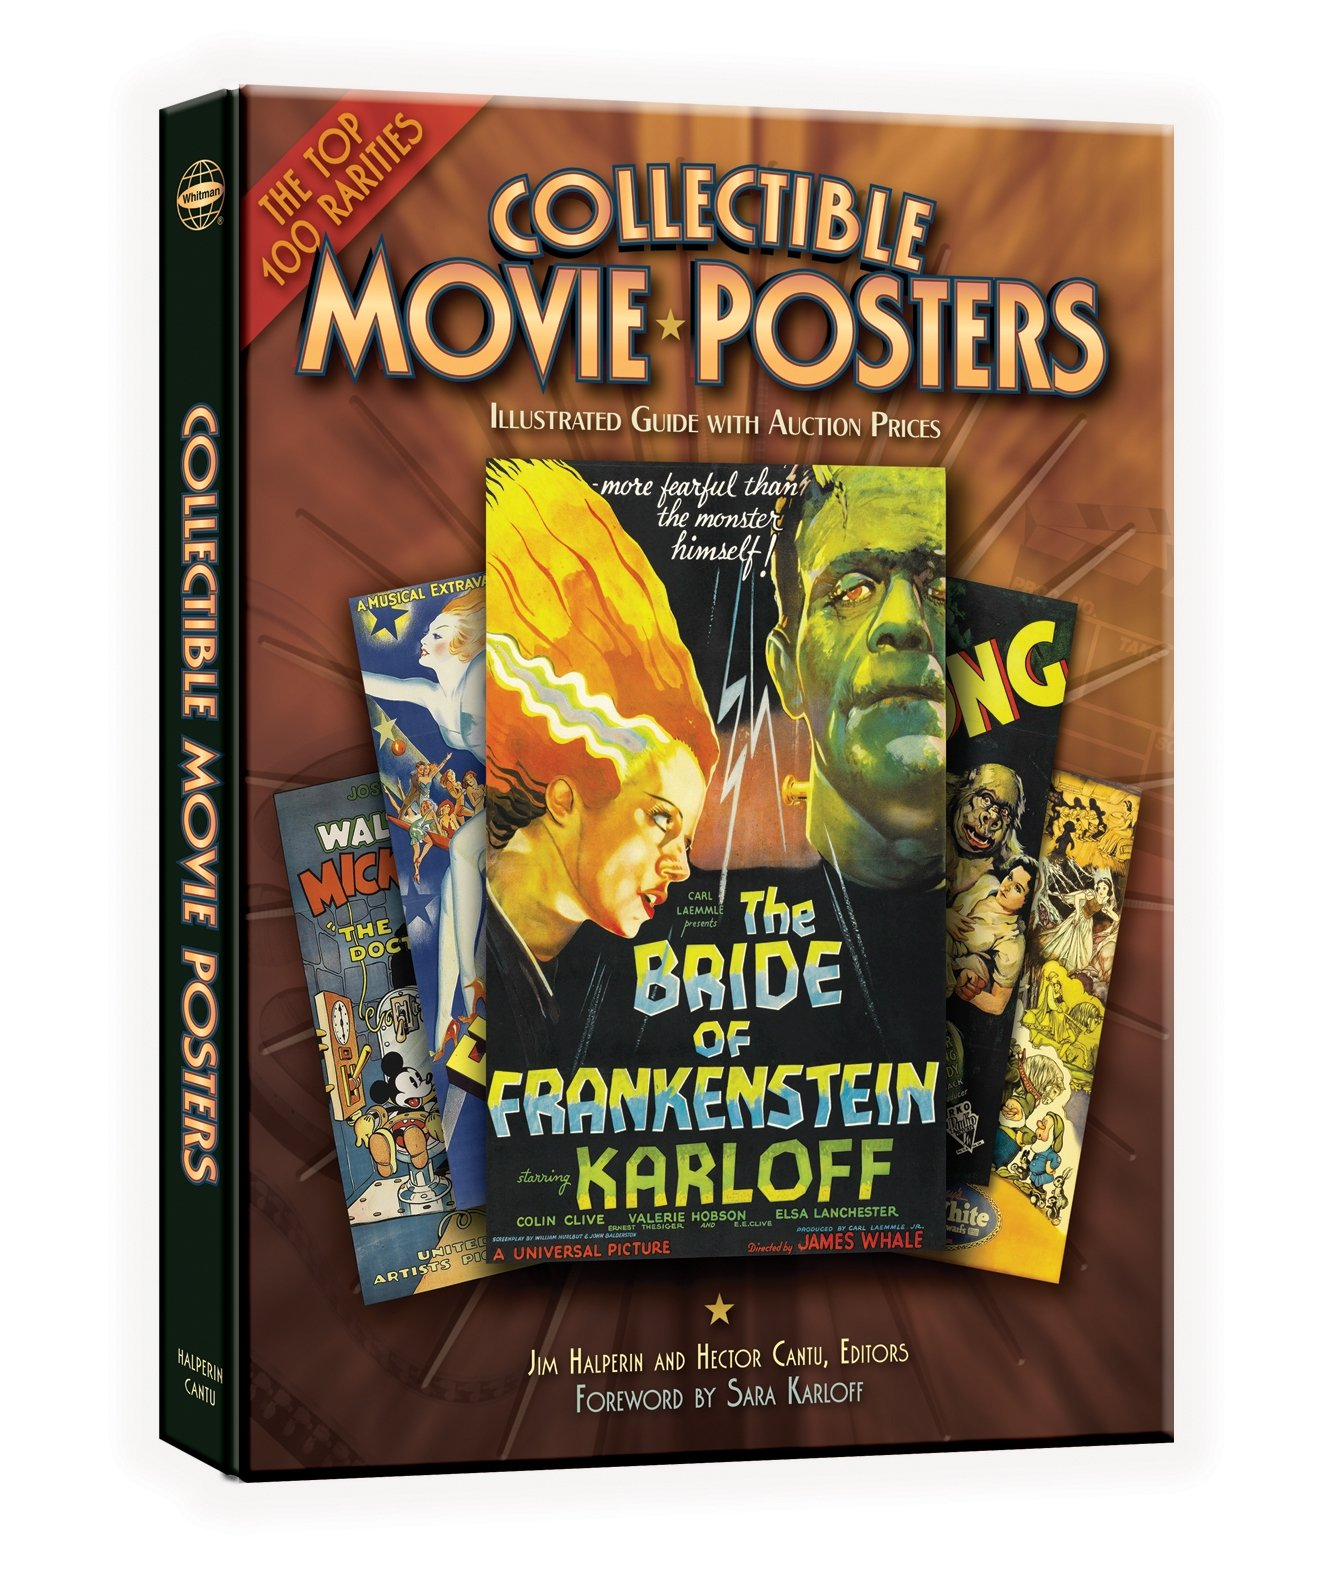 Collectible Movie Posters, Halperin, Jim & Cantu, Hector